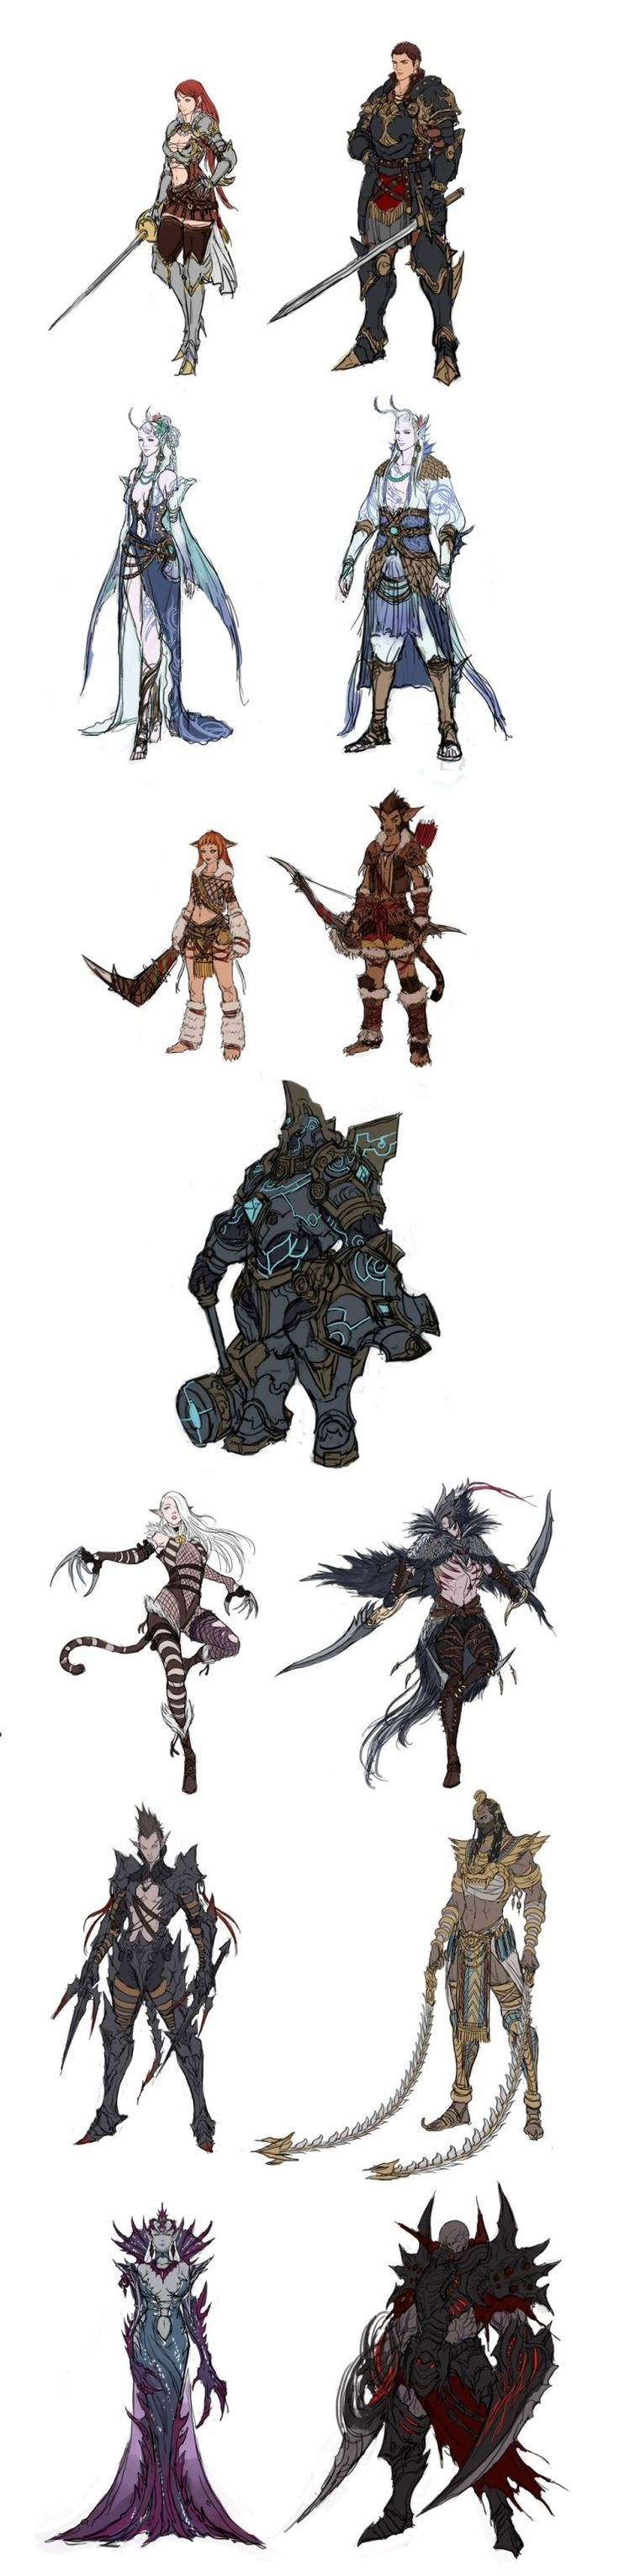 Fantasy Studio Character design   AR - There's an Earth, Water and Dark Djinn there